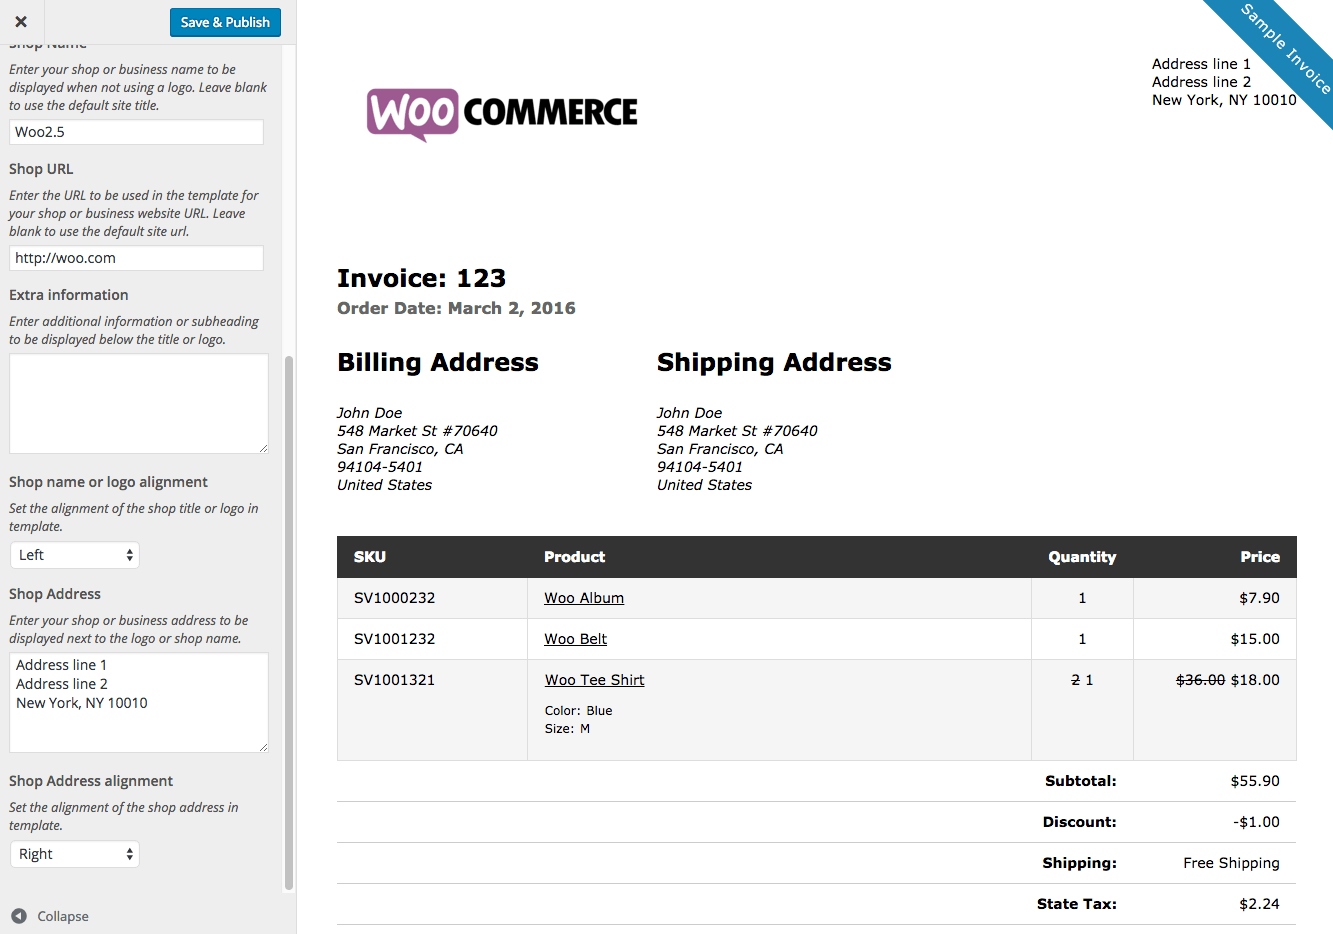 Angkajituus  Ravishing Woocommerce Print Invoices Amp Packing Lists  Woocommerce Docs With Exciting Woocommerce Print Invoices  Packing Lists Customizer With Agreeable Free Business Invoice Software Also Car Dealer Invoice Price List In Addition Dfas My Invoice And Commercial Invoice Fed Ex As Well As Web Design Invoice Sample Additionally Invoice Template Design From Docswoocommercecom With Angkajituus  Exciting Woocommerce Print Invoices Amp Packing Lists  Woocommerce Docs With Agreeable Woocommerce Print Invoices  Packing Lists Customizer And Ravishing Free Business Invoice Software Also Car Dealer Invoice Price List In Addition Dfas My Invoice From Docswoocommercecom